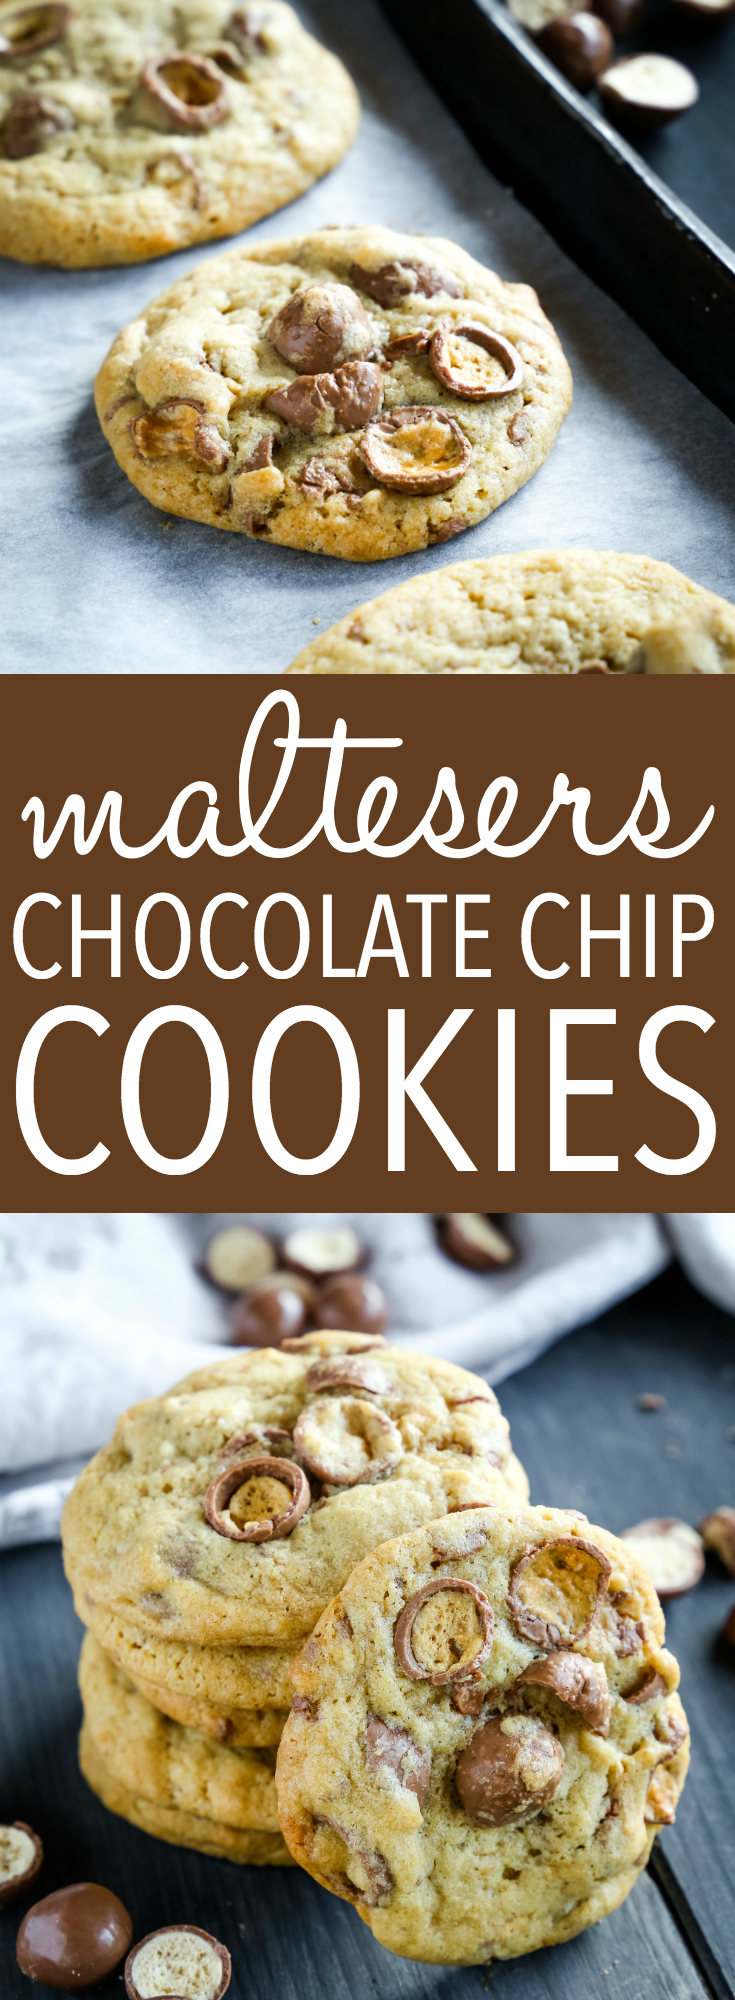 These Maltesers Chocolate Chip Cookies are the perfect homemade treat for Maltesers lovers! A tender, chewy cookie made with everybody's favourite malted milk chocolate balls! Recipe from thebusybaker.ca! #maltesers #maltballs #maltedmilk #malt #malt #candy #chocolate #chocolatebar #candybar #chocolatechips #chocolatechipcookies #cookies #dessert #snack #easyrecipe #homemade